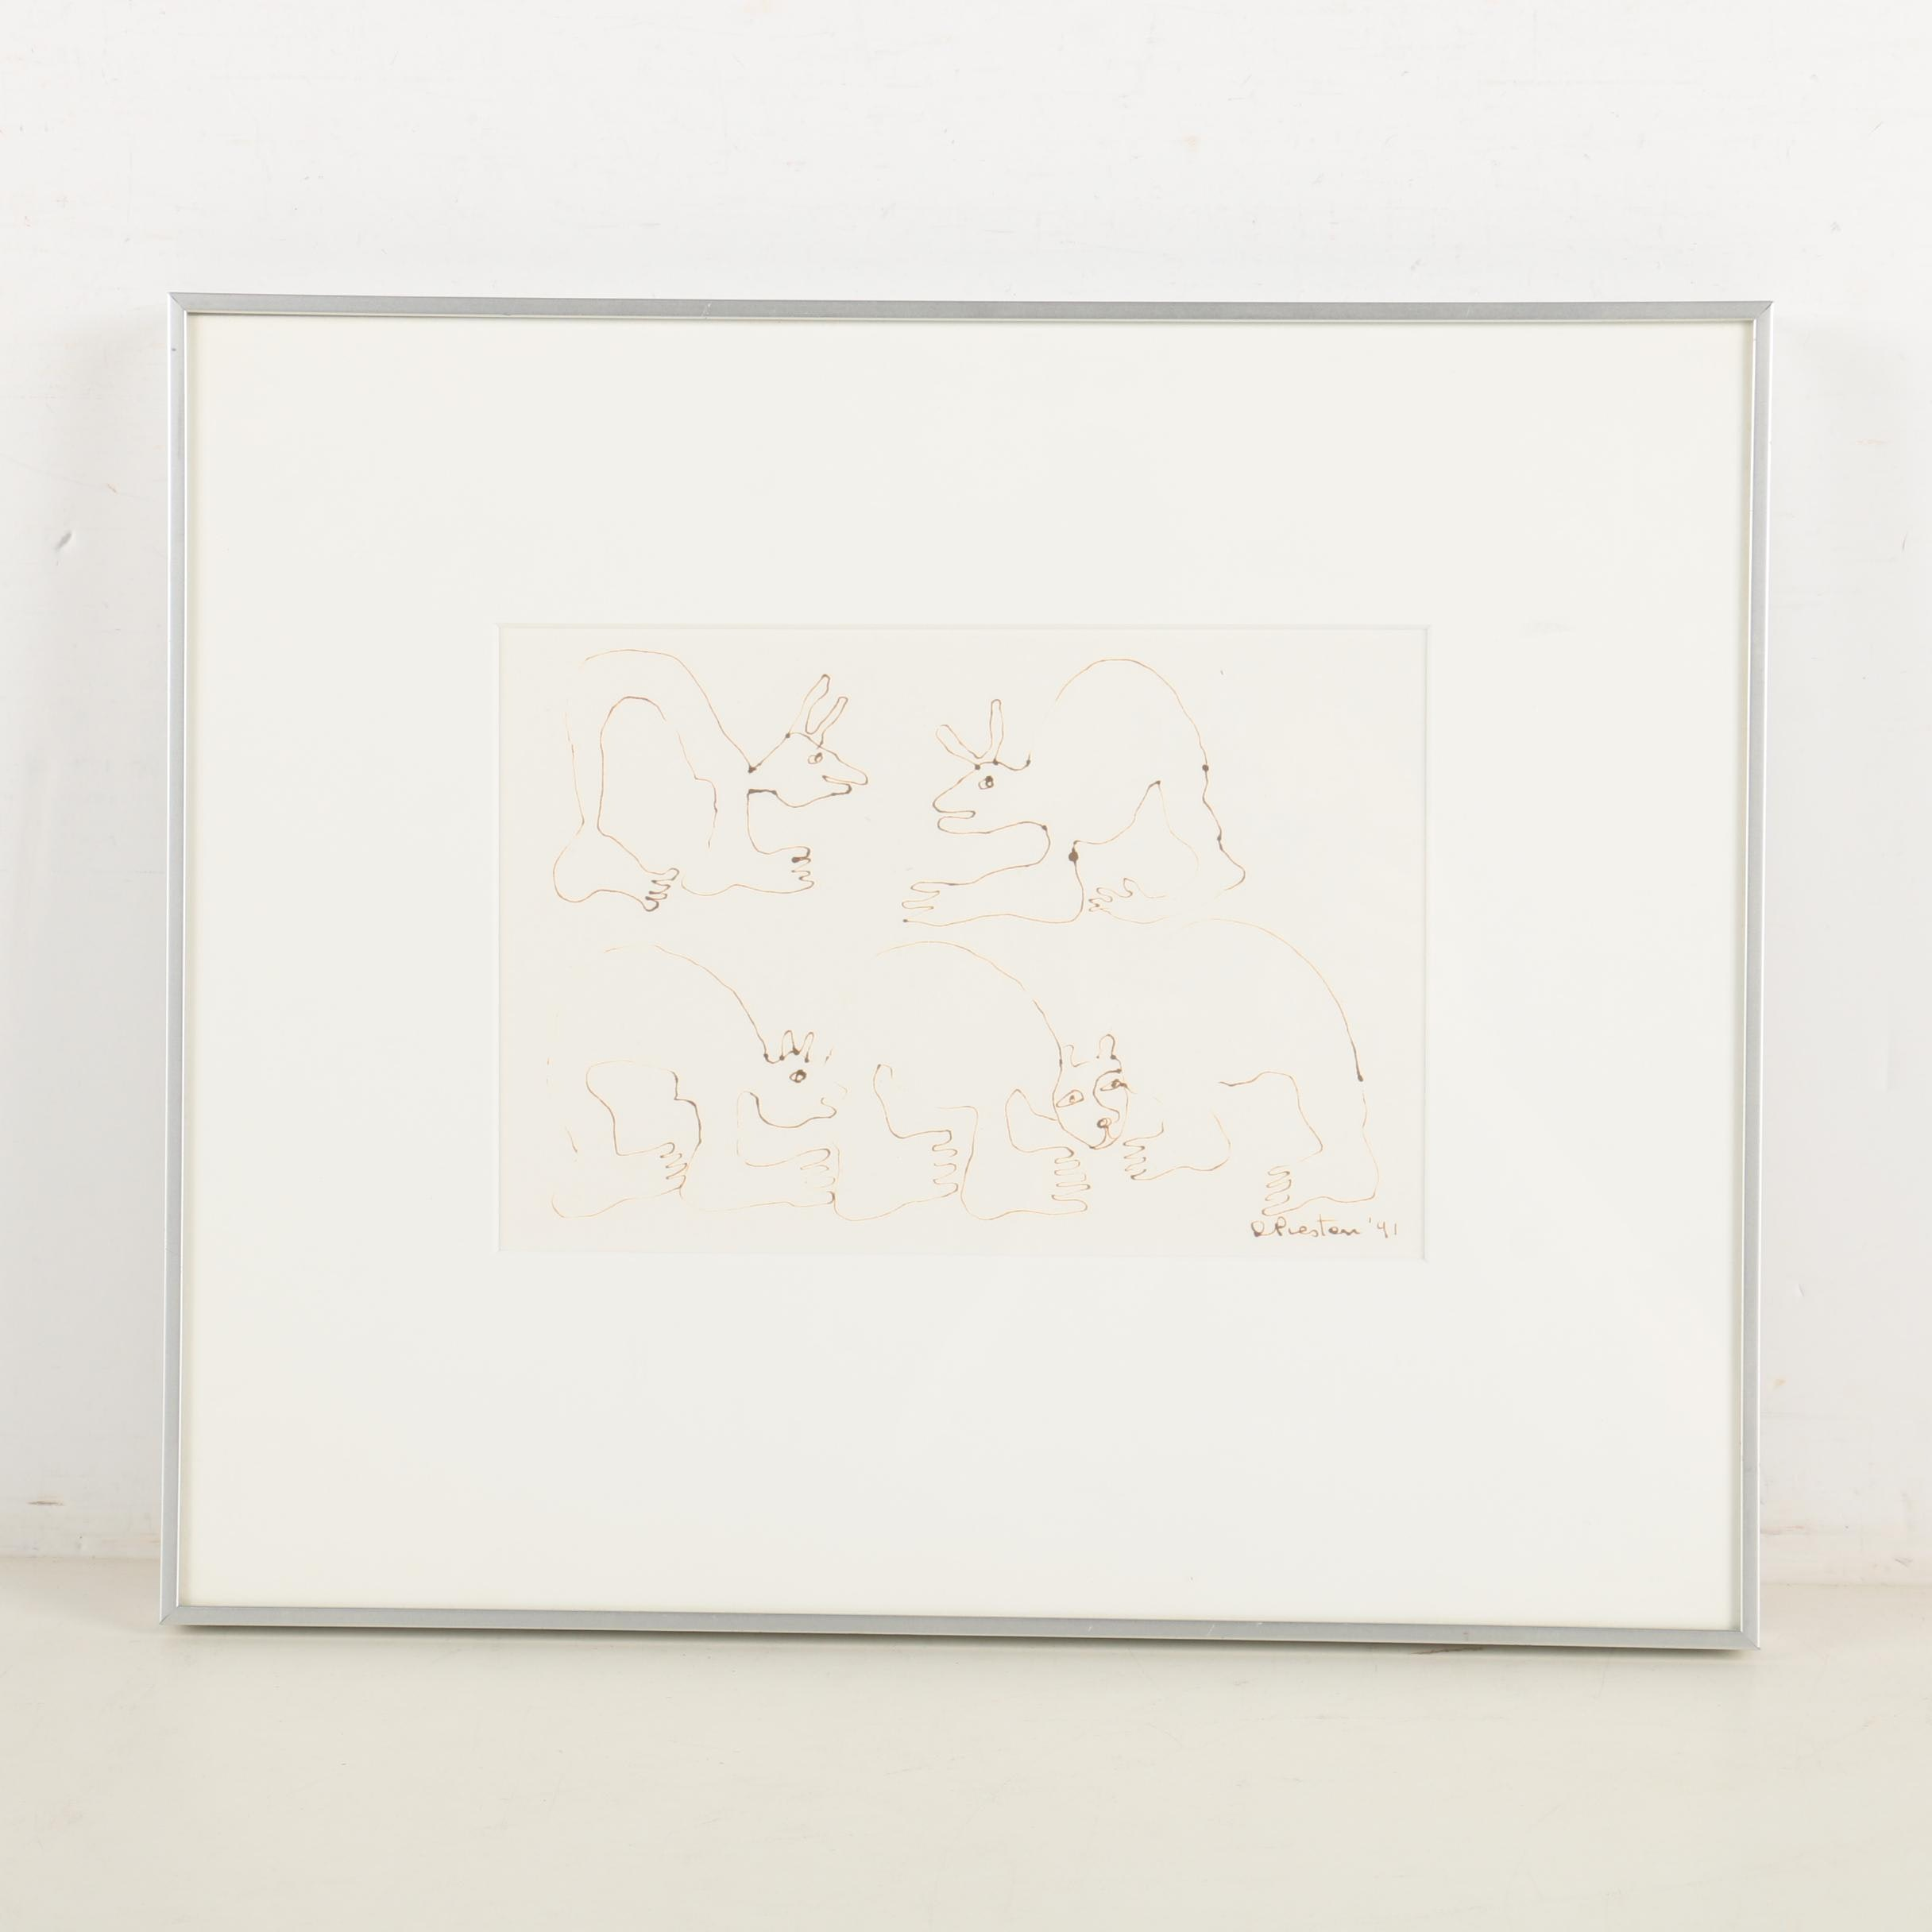 Dorothy Preston Ink Drawing on Paper of Abstracted Animals